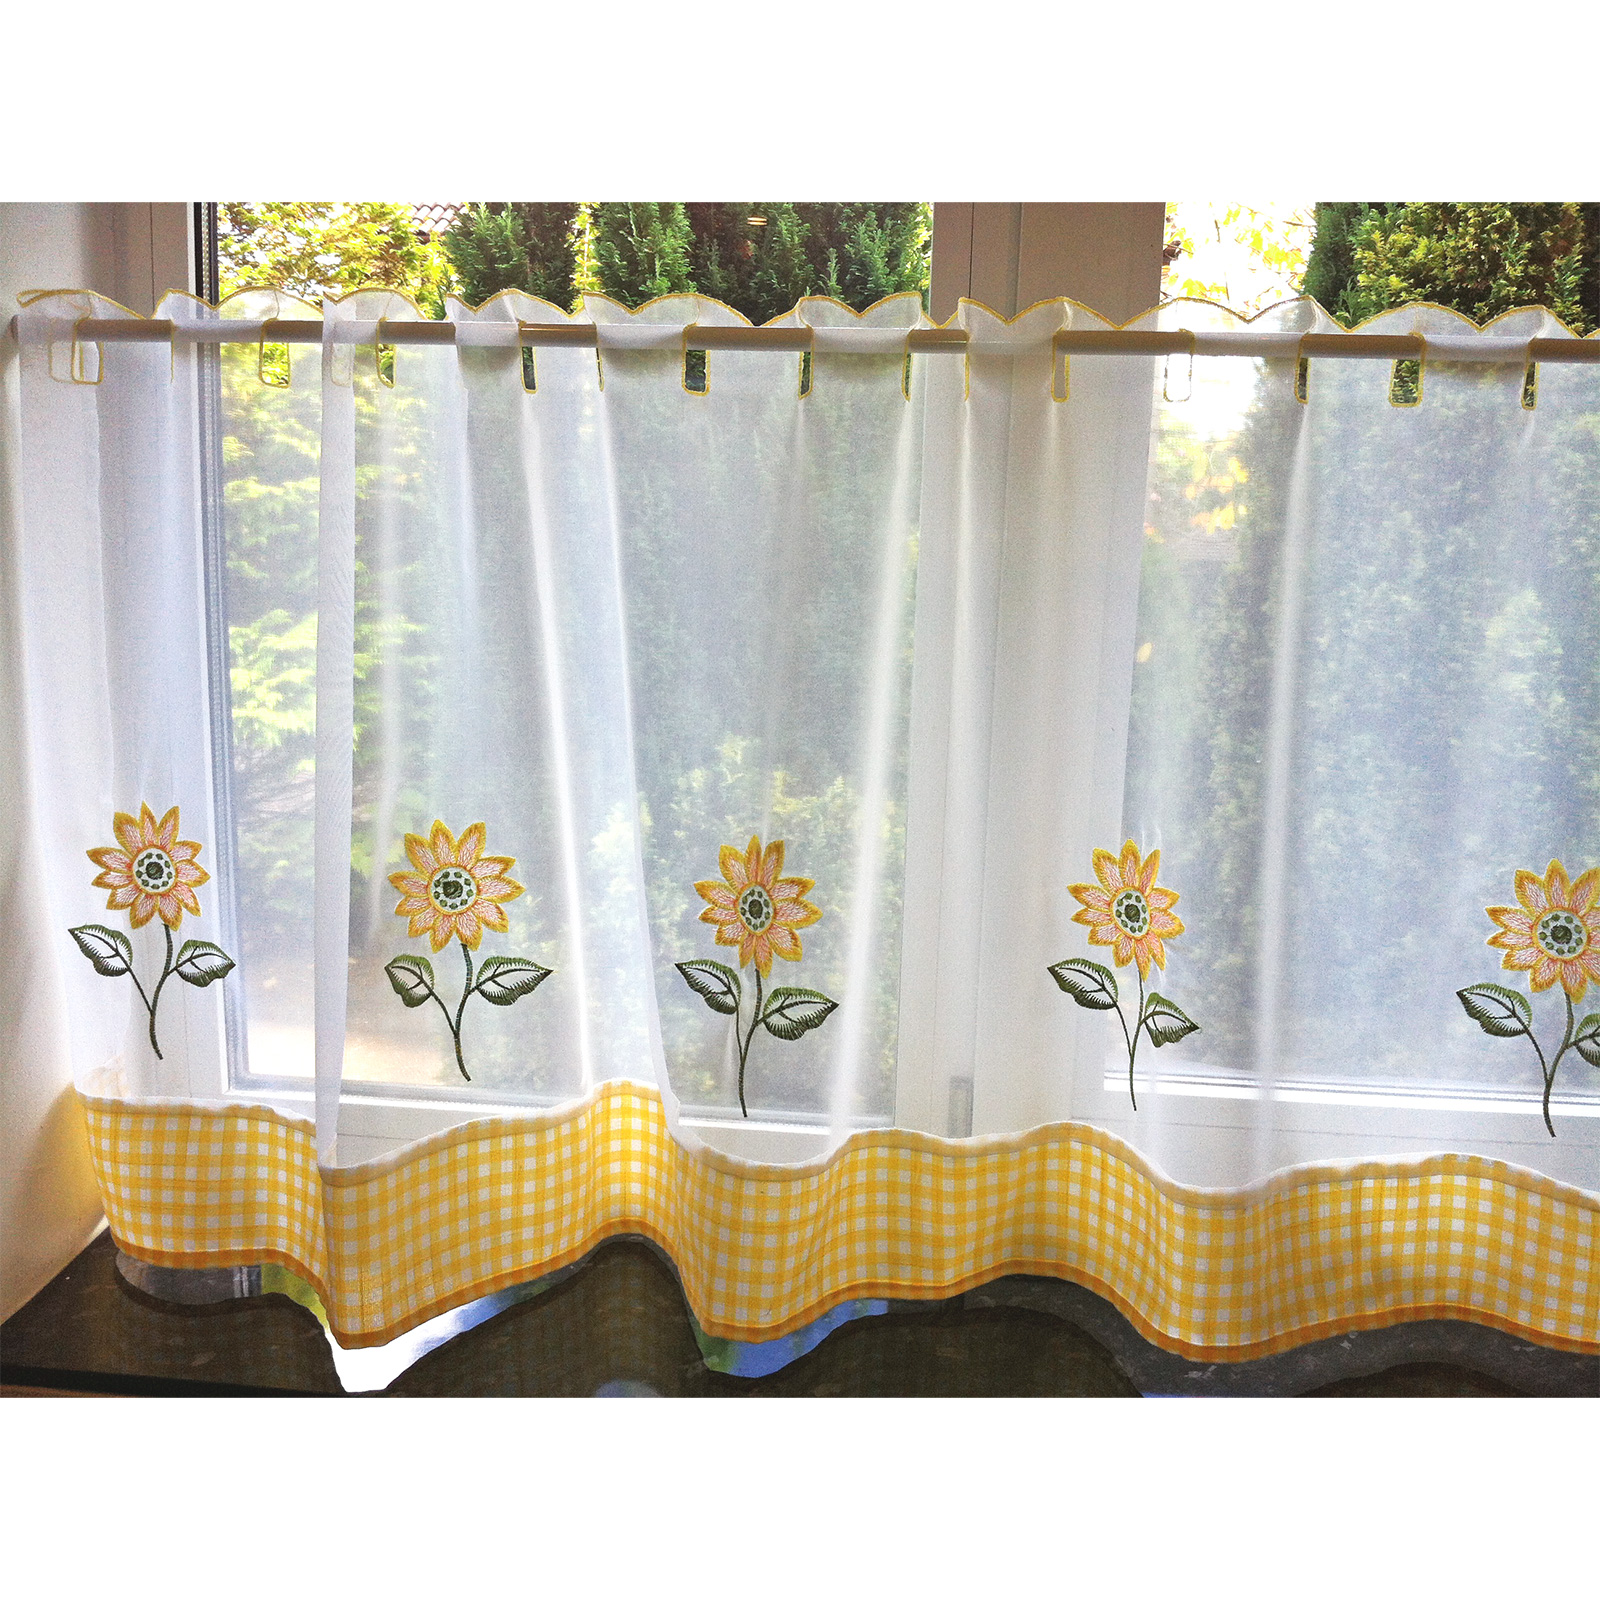 Café Net Curtains Kitchen Nets Ready Made Voile Curtain